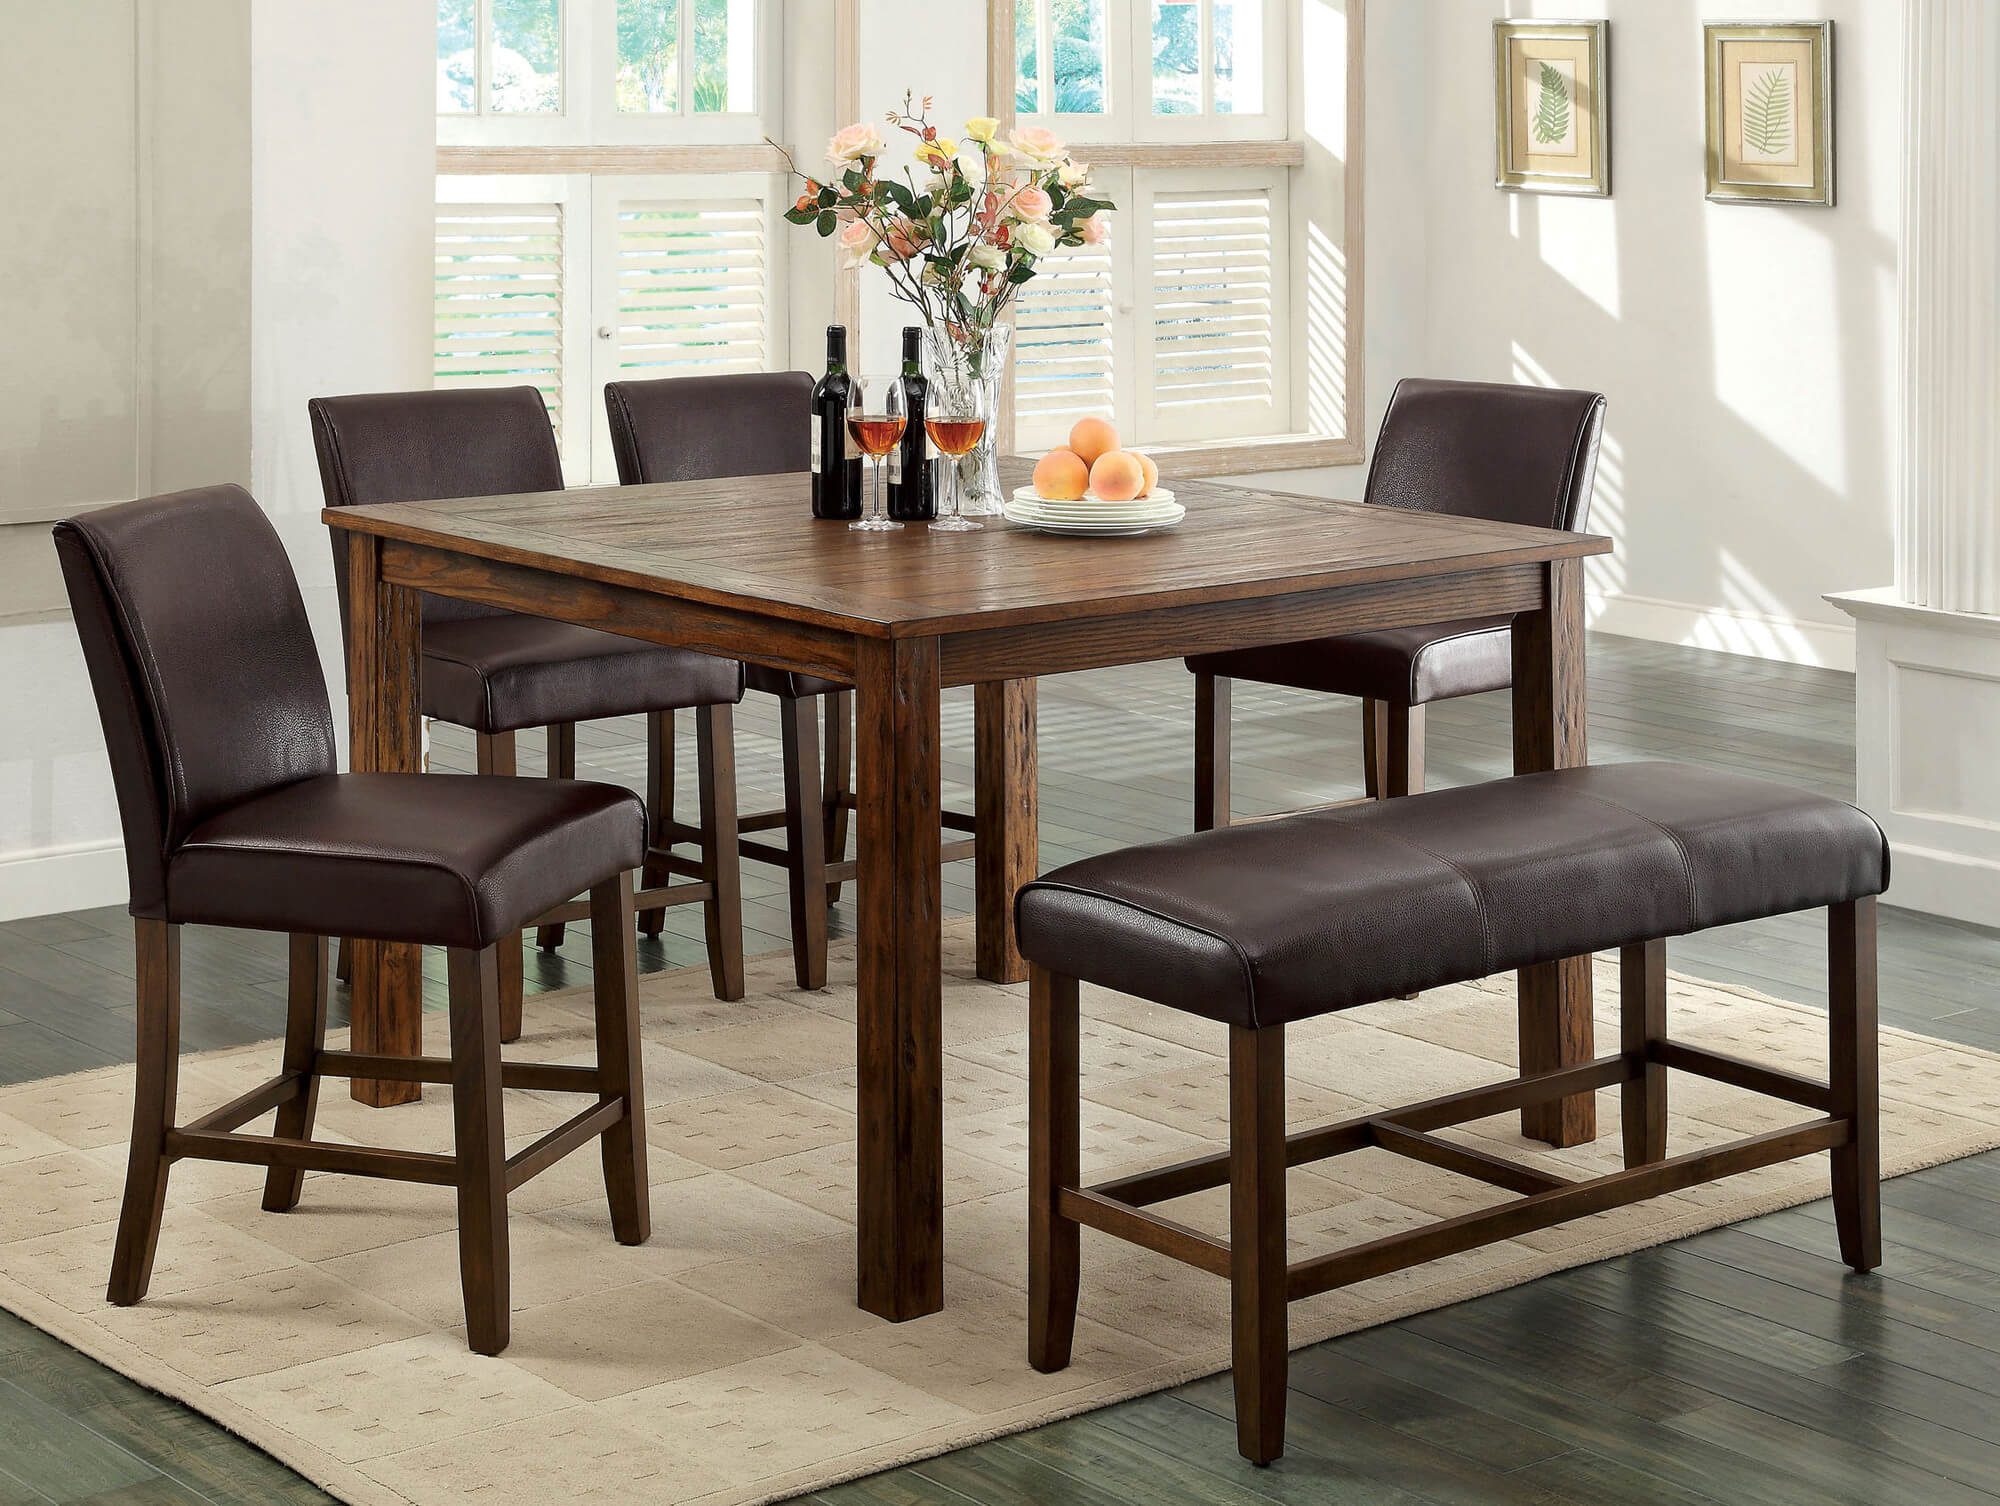 Counter height rustic dining room set with bench. Wood is dark oak finish; constructed with solid wood, MDF and wood veneer. This set is perfect for getting the more rustic and rich dining room décor.